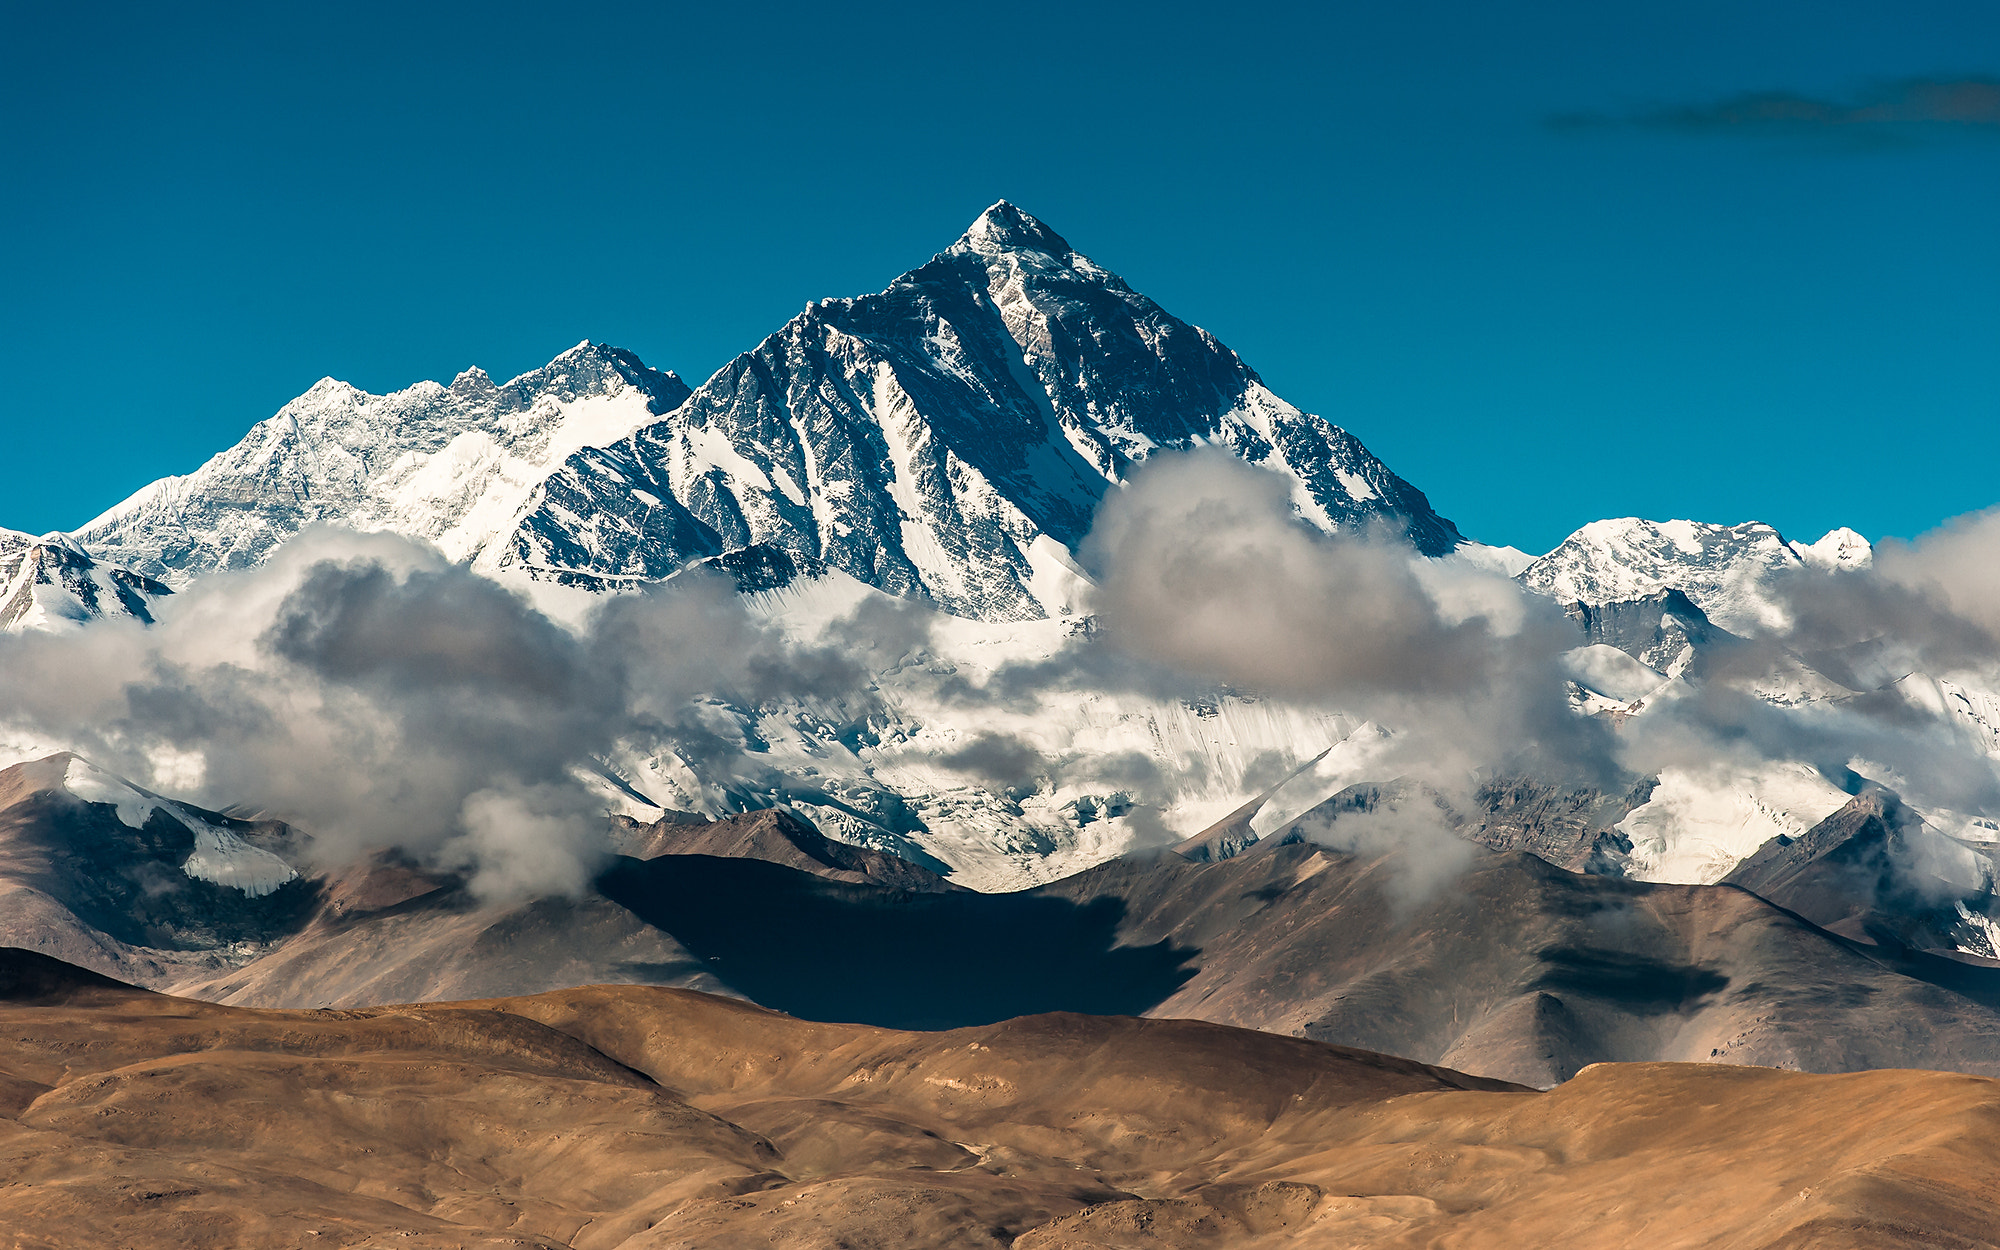 Photograph The Everest by Coolbiere. A. on 500px